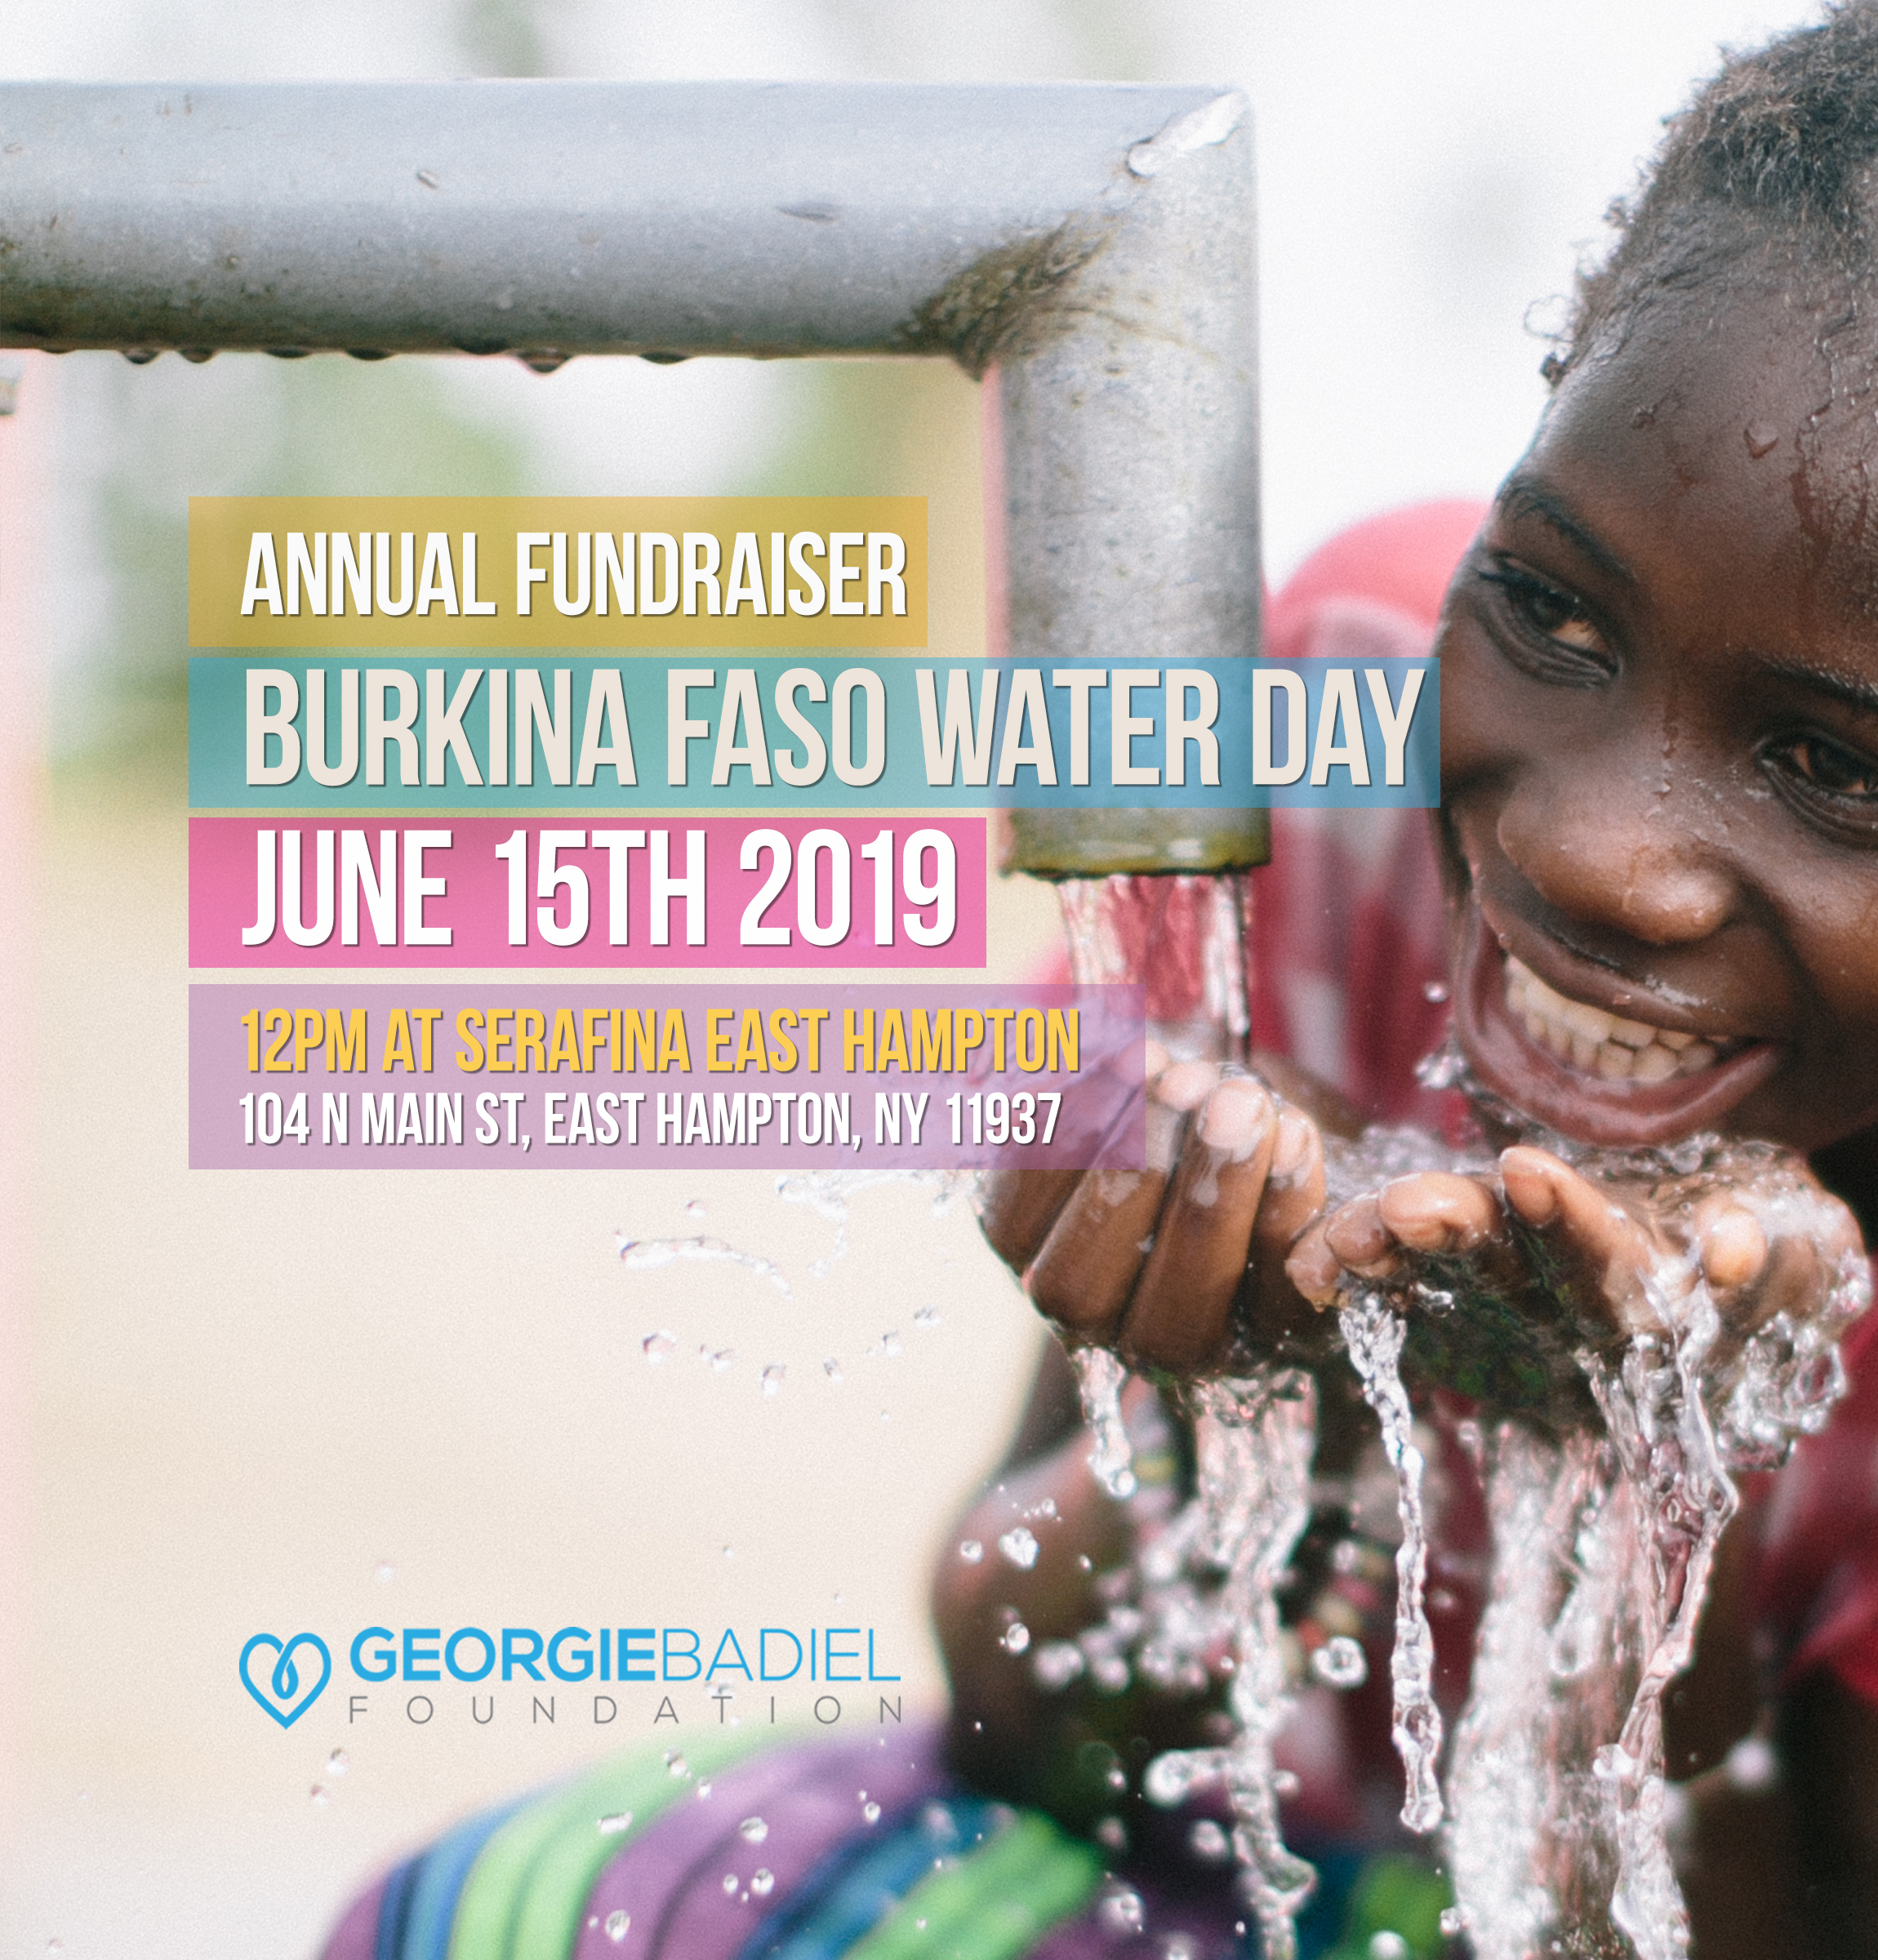 EMPOWER WOMEN THROUGH CLEAN WATER! - Please join us for a fun charity luncheon event in The Hamptons to celebrate Burkina Faso Water Day and to raise funds to benefit the Georgie Badiel Foundation. Our goal this year is to build the first well school in Burkina Faso, which will help us sustain all our water projects and also empower over 35 000 women in Tanghuin Dassouri. We can do this together! Thank you for joining us to make a difference.